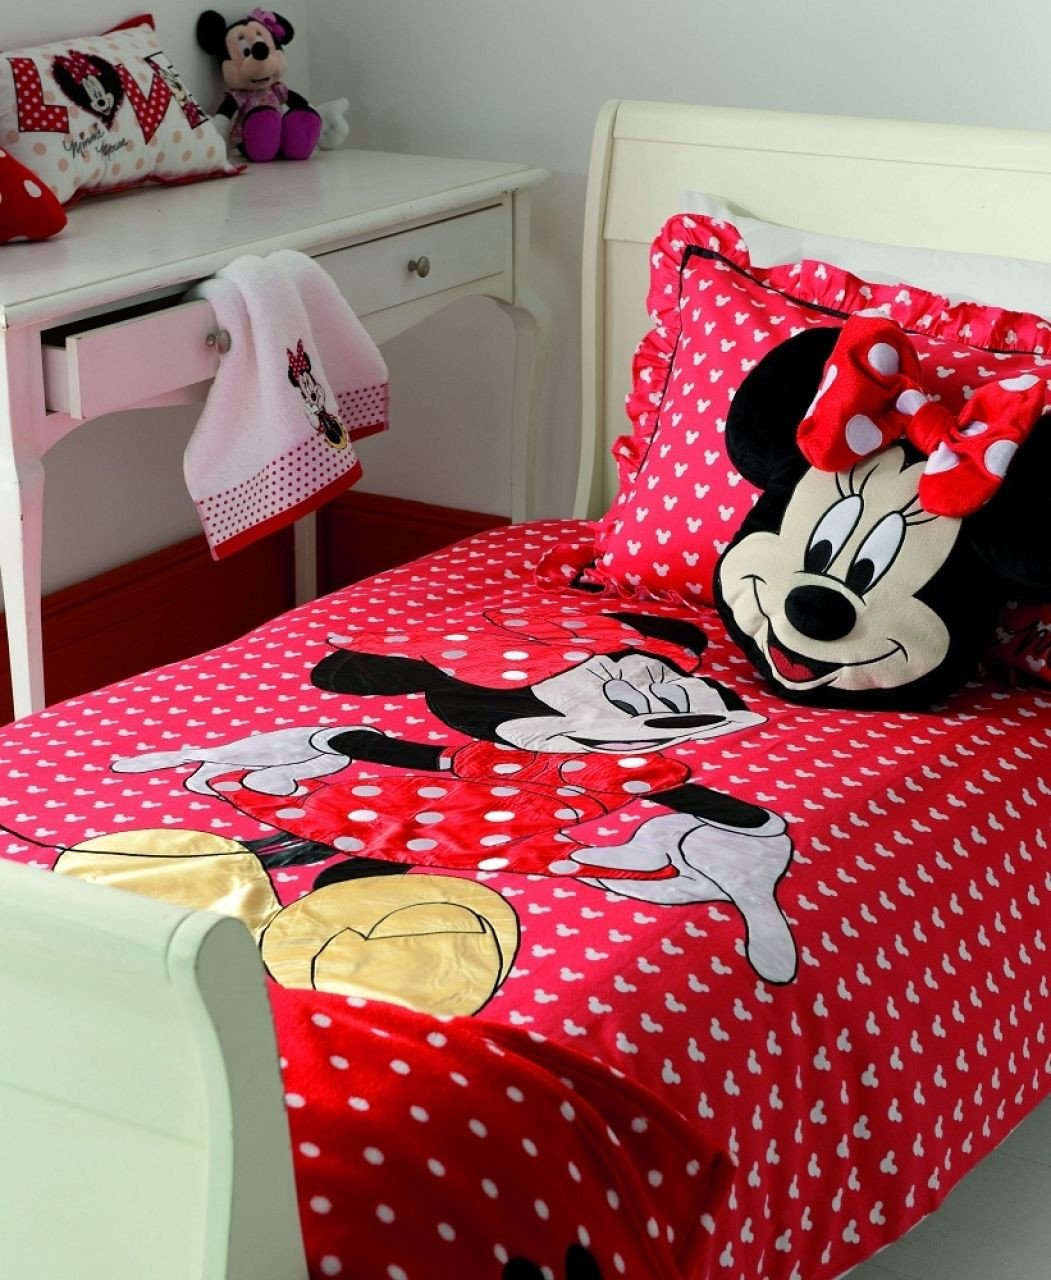 Mickey Mouse Bedroom Decorations Luxury Decor Mickey and Minnie Mouse Bedding Queen Size Minnie